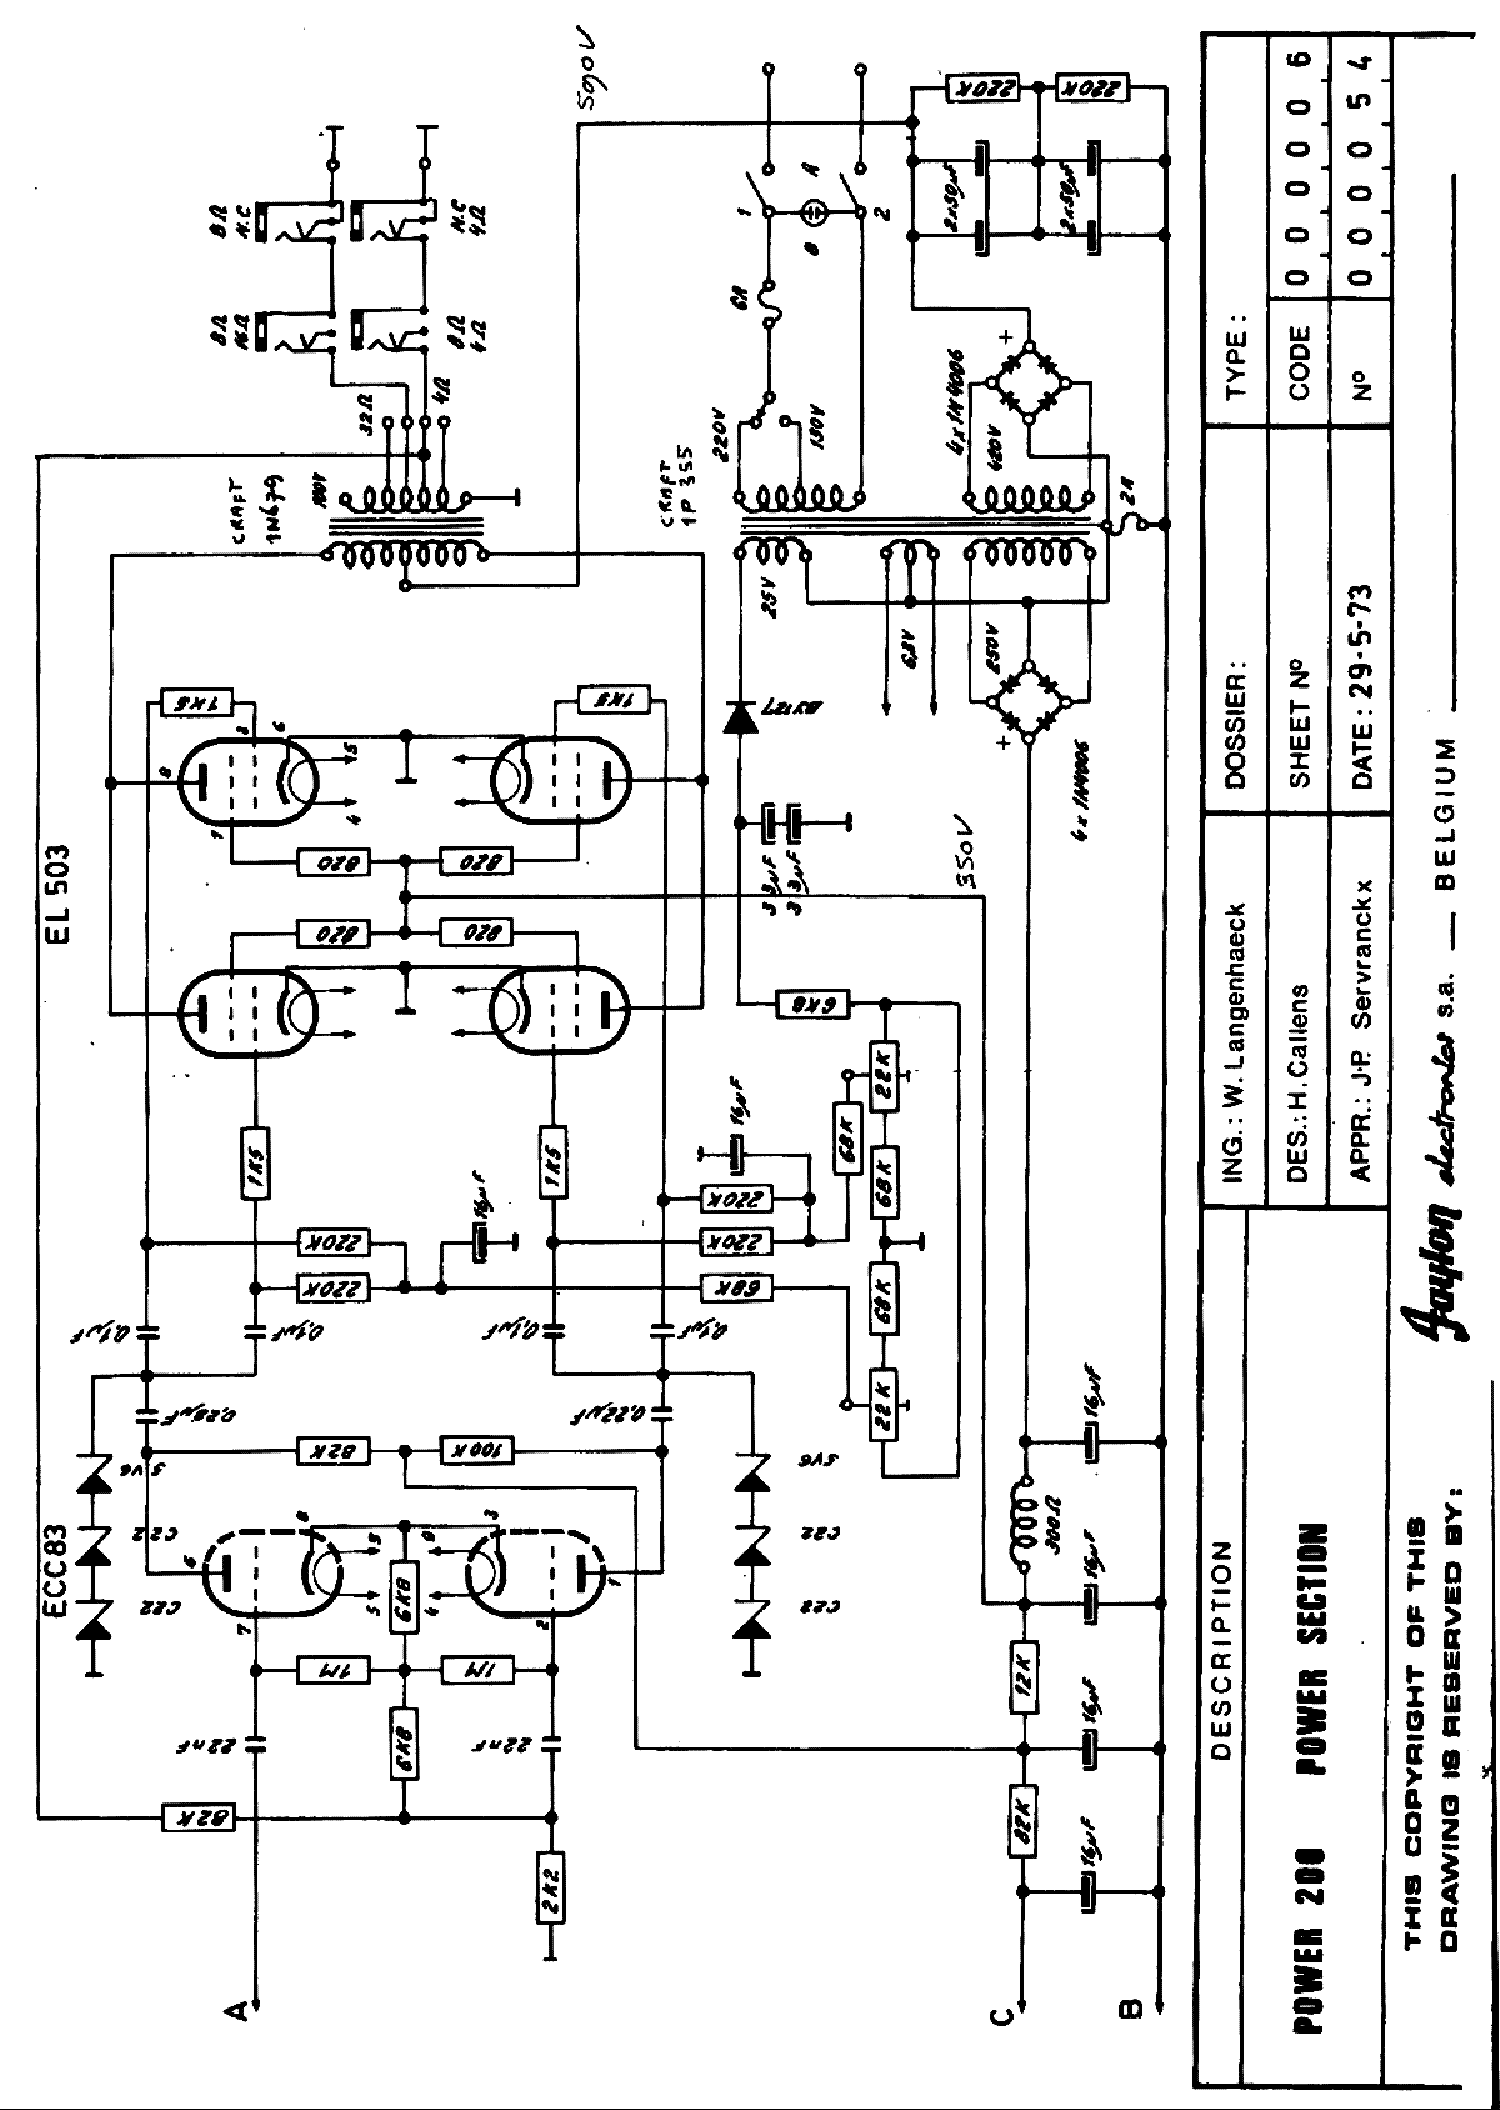 FAYLON POWER-200 AUDIO PA 1973 SCH Service Manual download